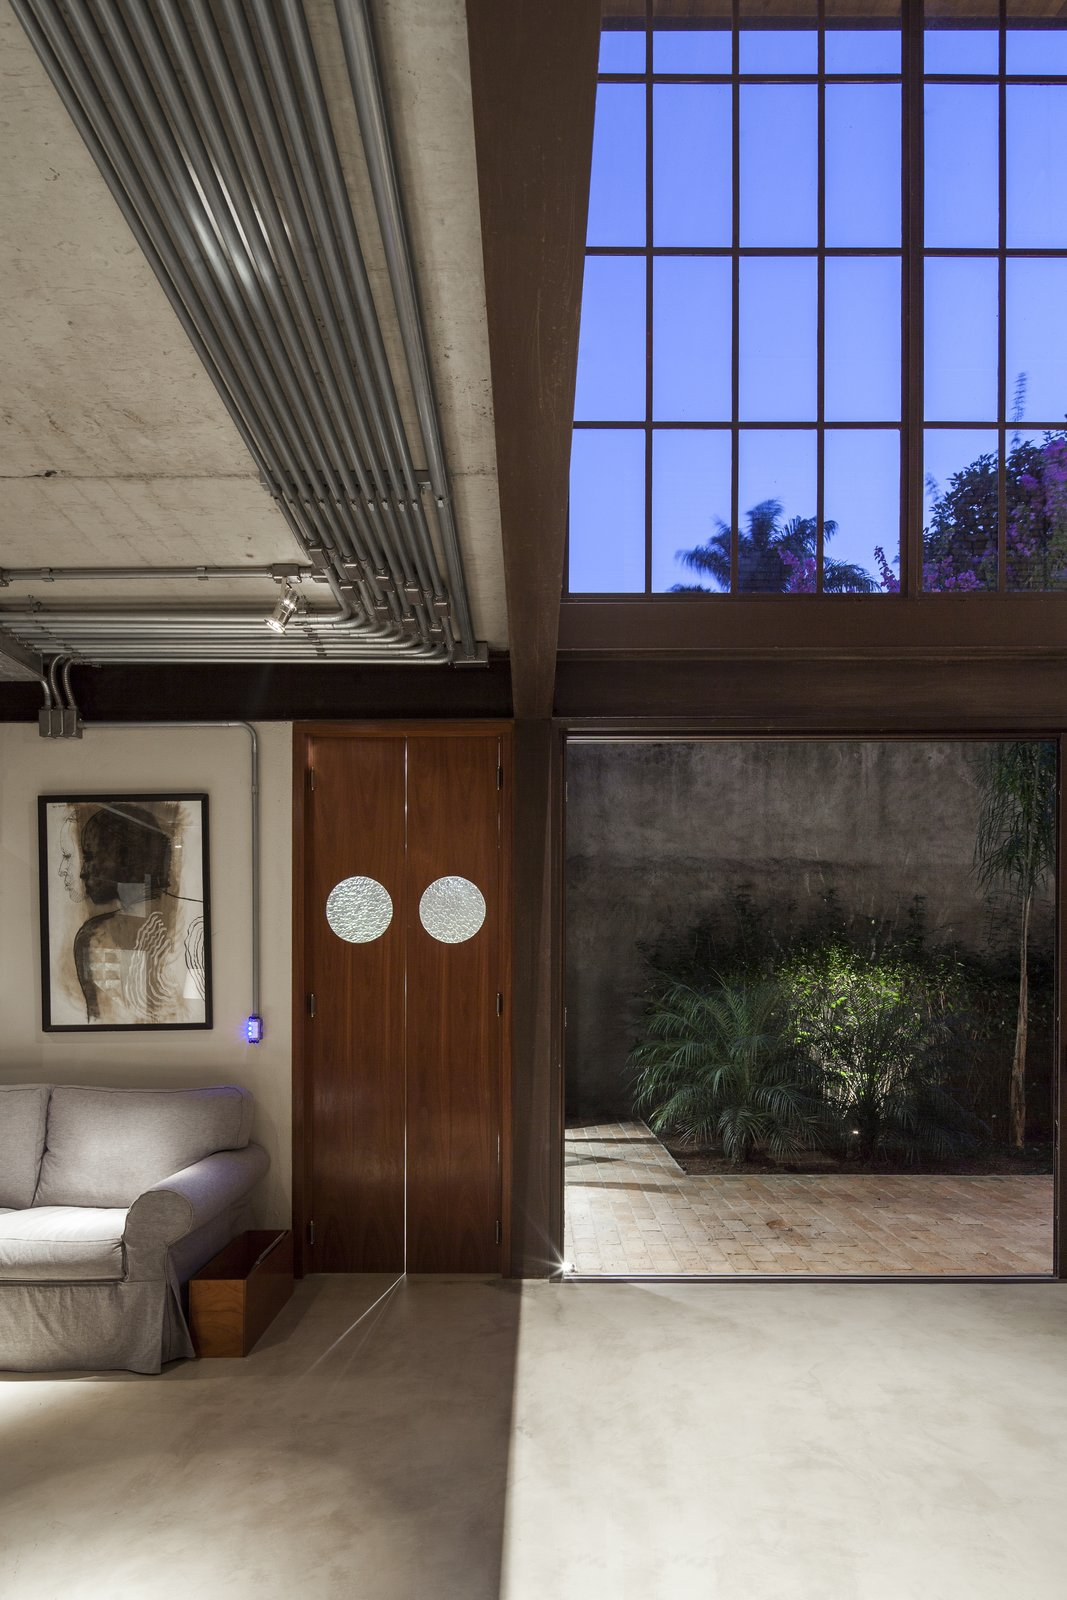 Living Room, Ceiling Lighting, Sofa, Concrete Floor, and Lamps  Best Photos from Conde D'eu House